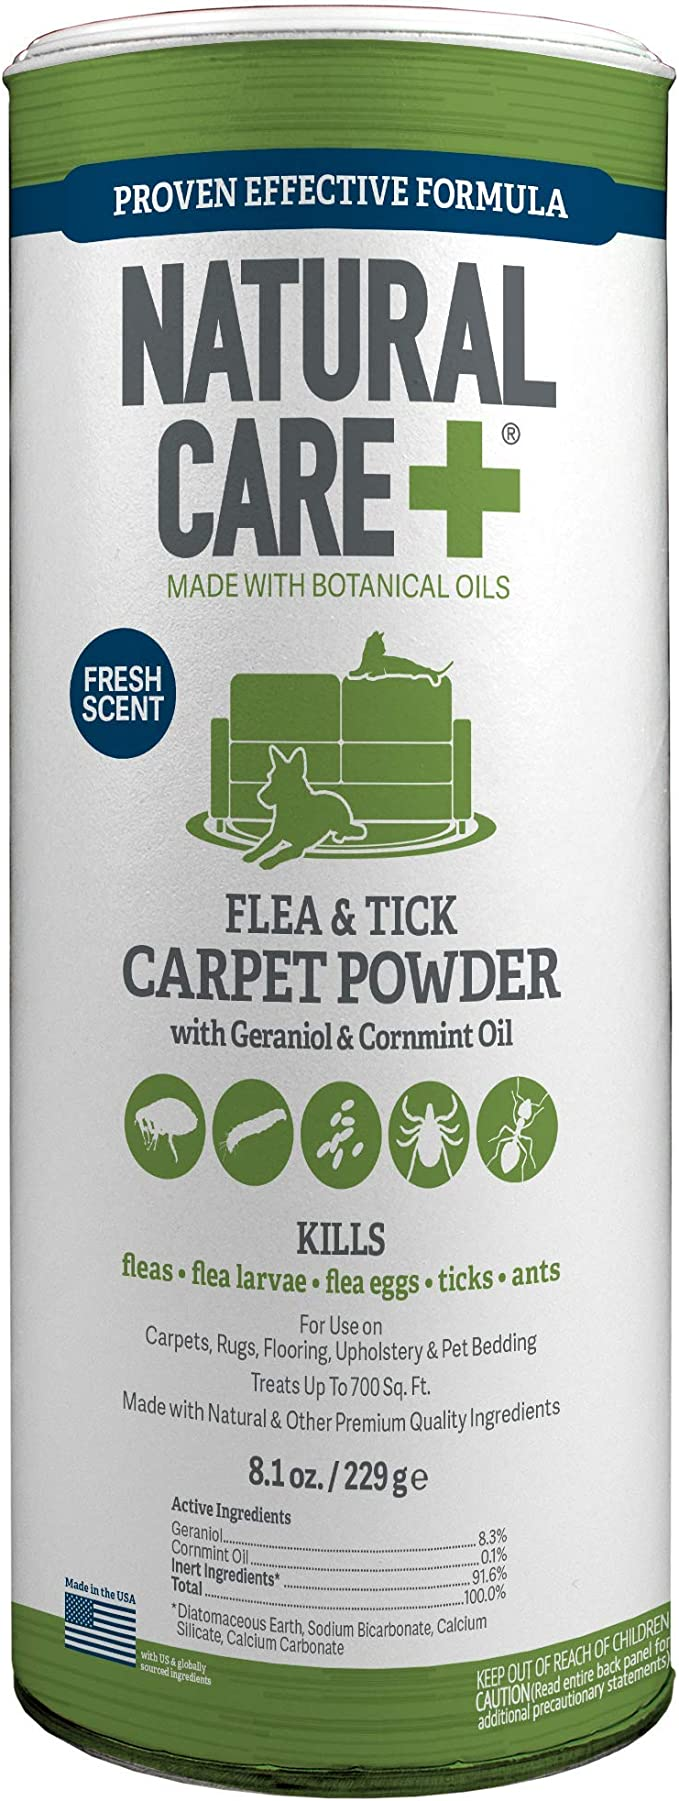 Natural Care Flea And Tick Carpet Powder Flea Treatment For Rugs Carpet Or Pet Bedding 8 1 Ounce Canister